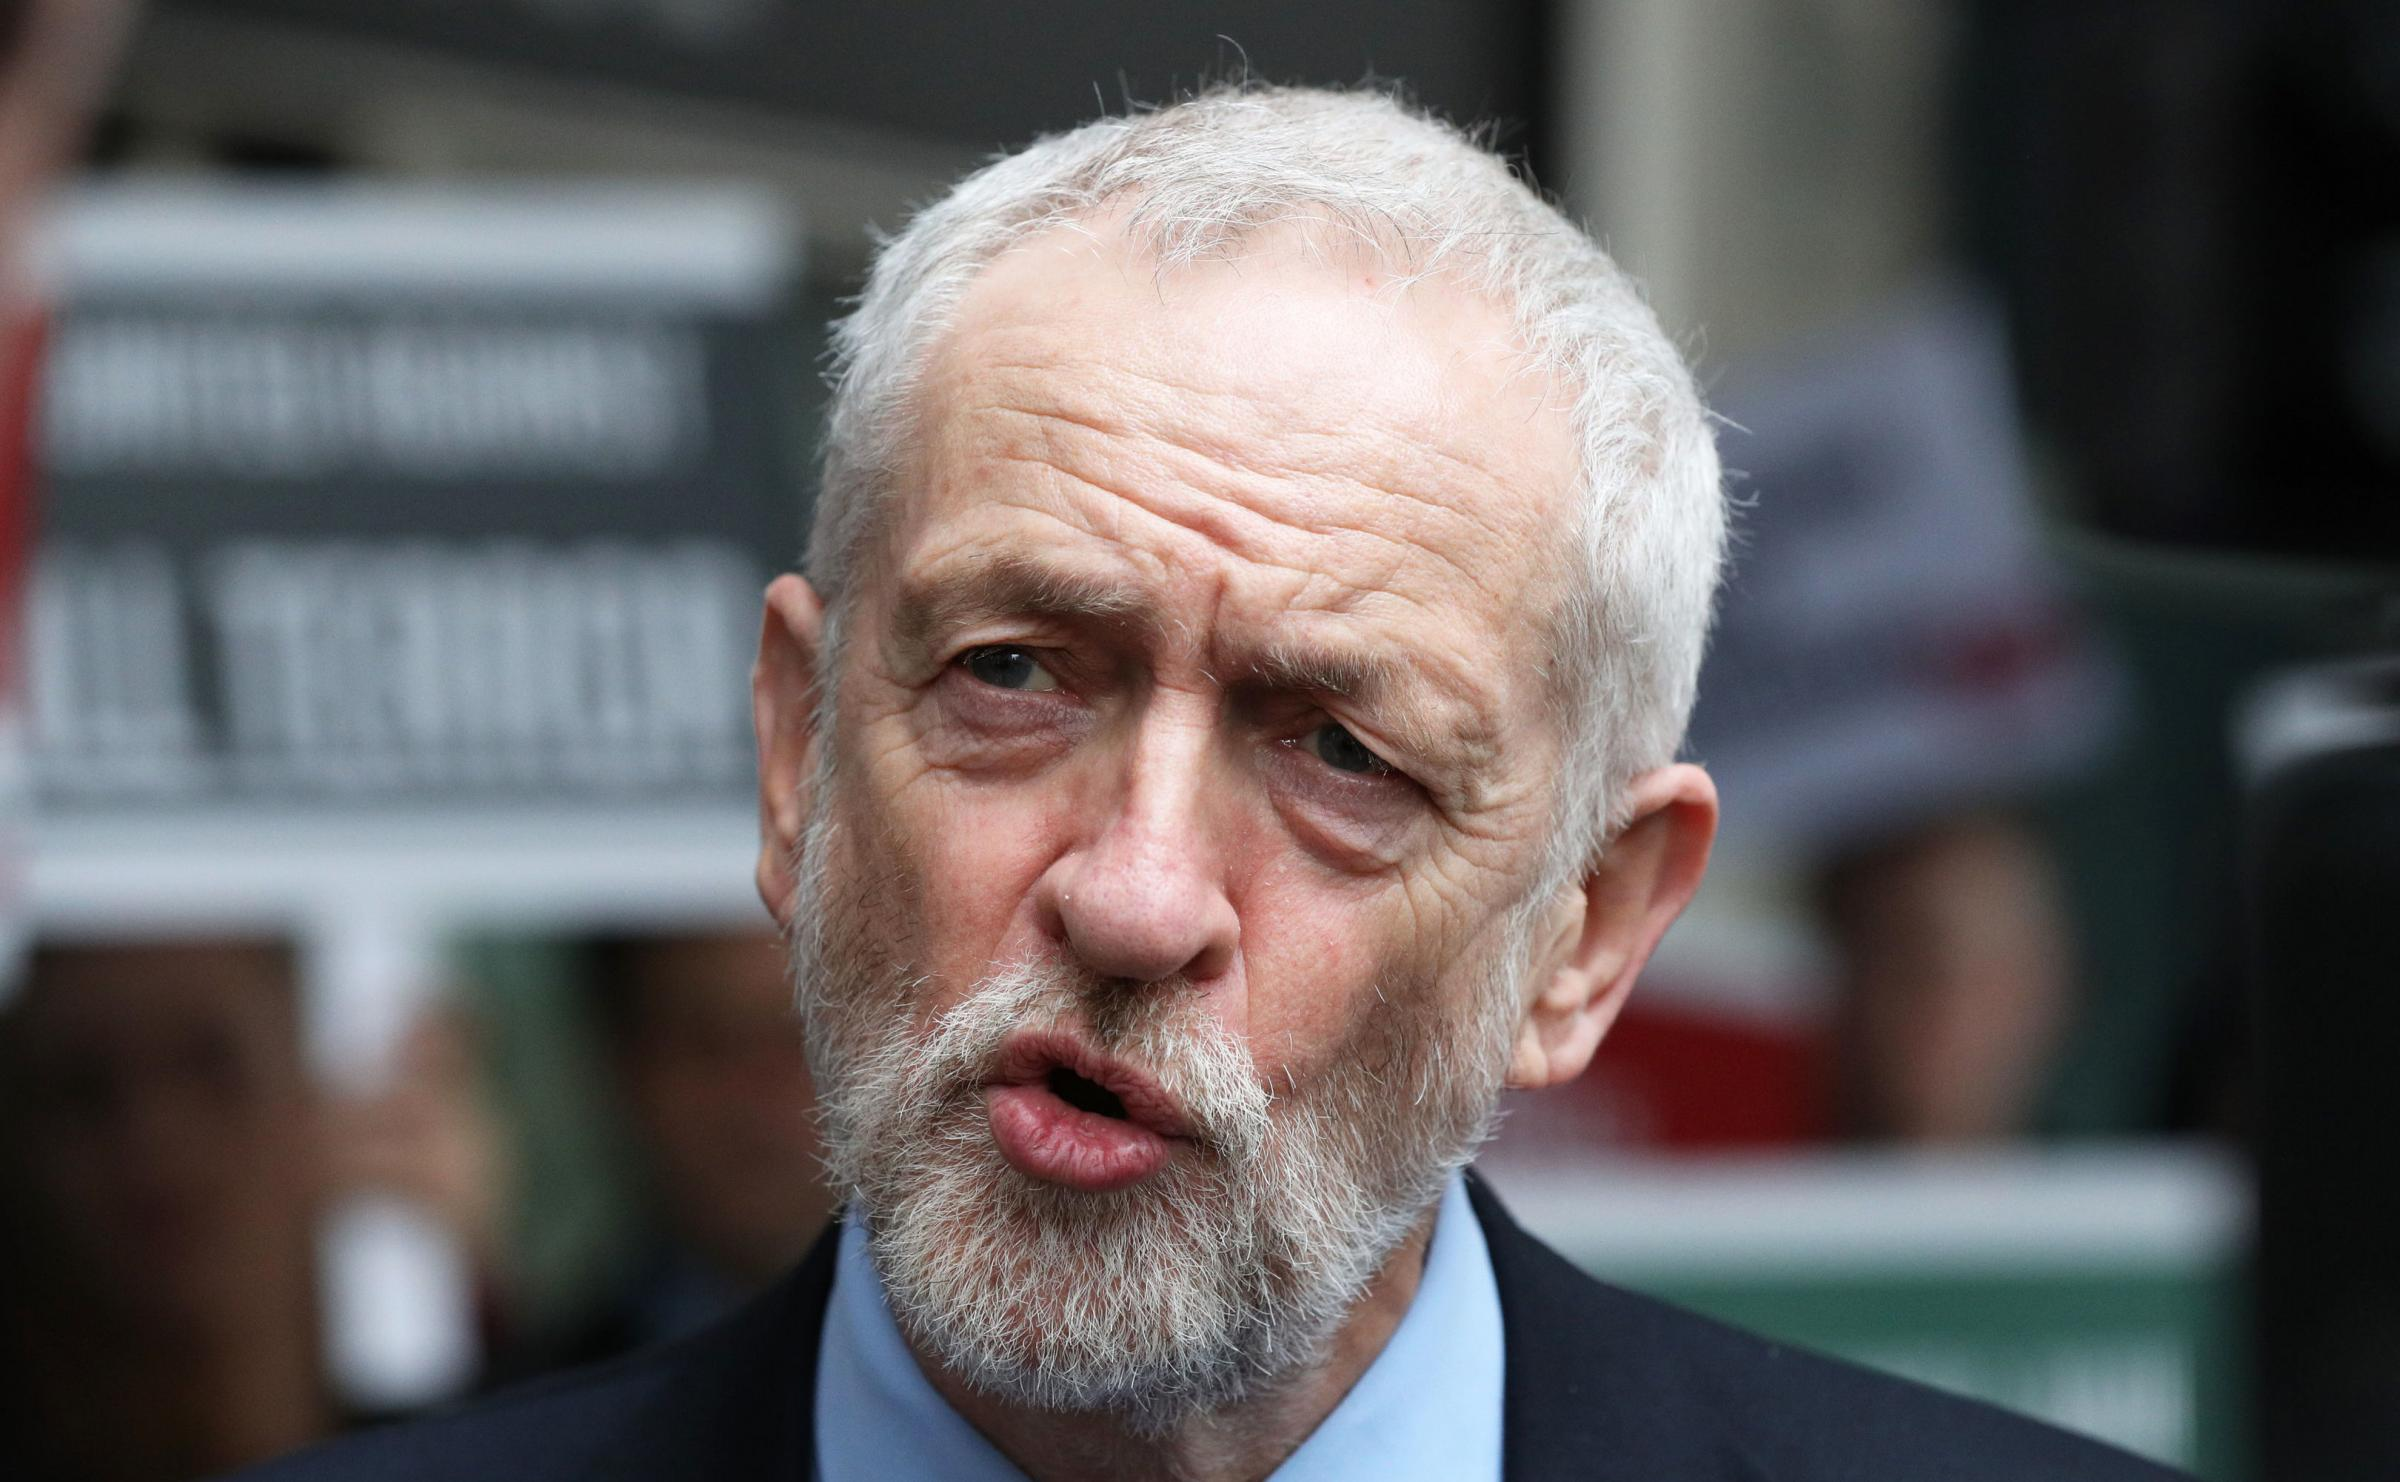 Jeremy Corbyn flounced out of Brexit talks